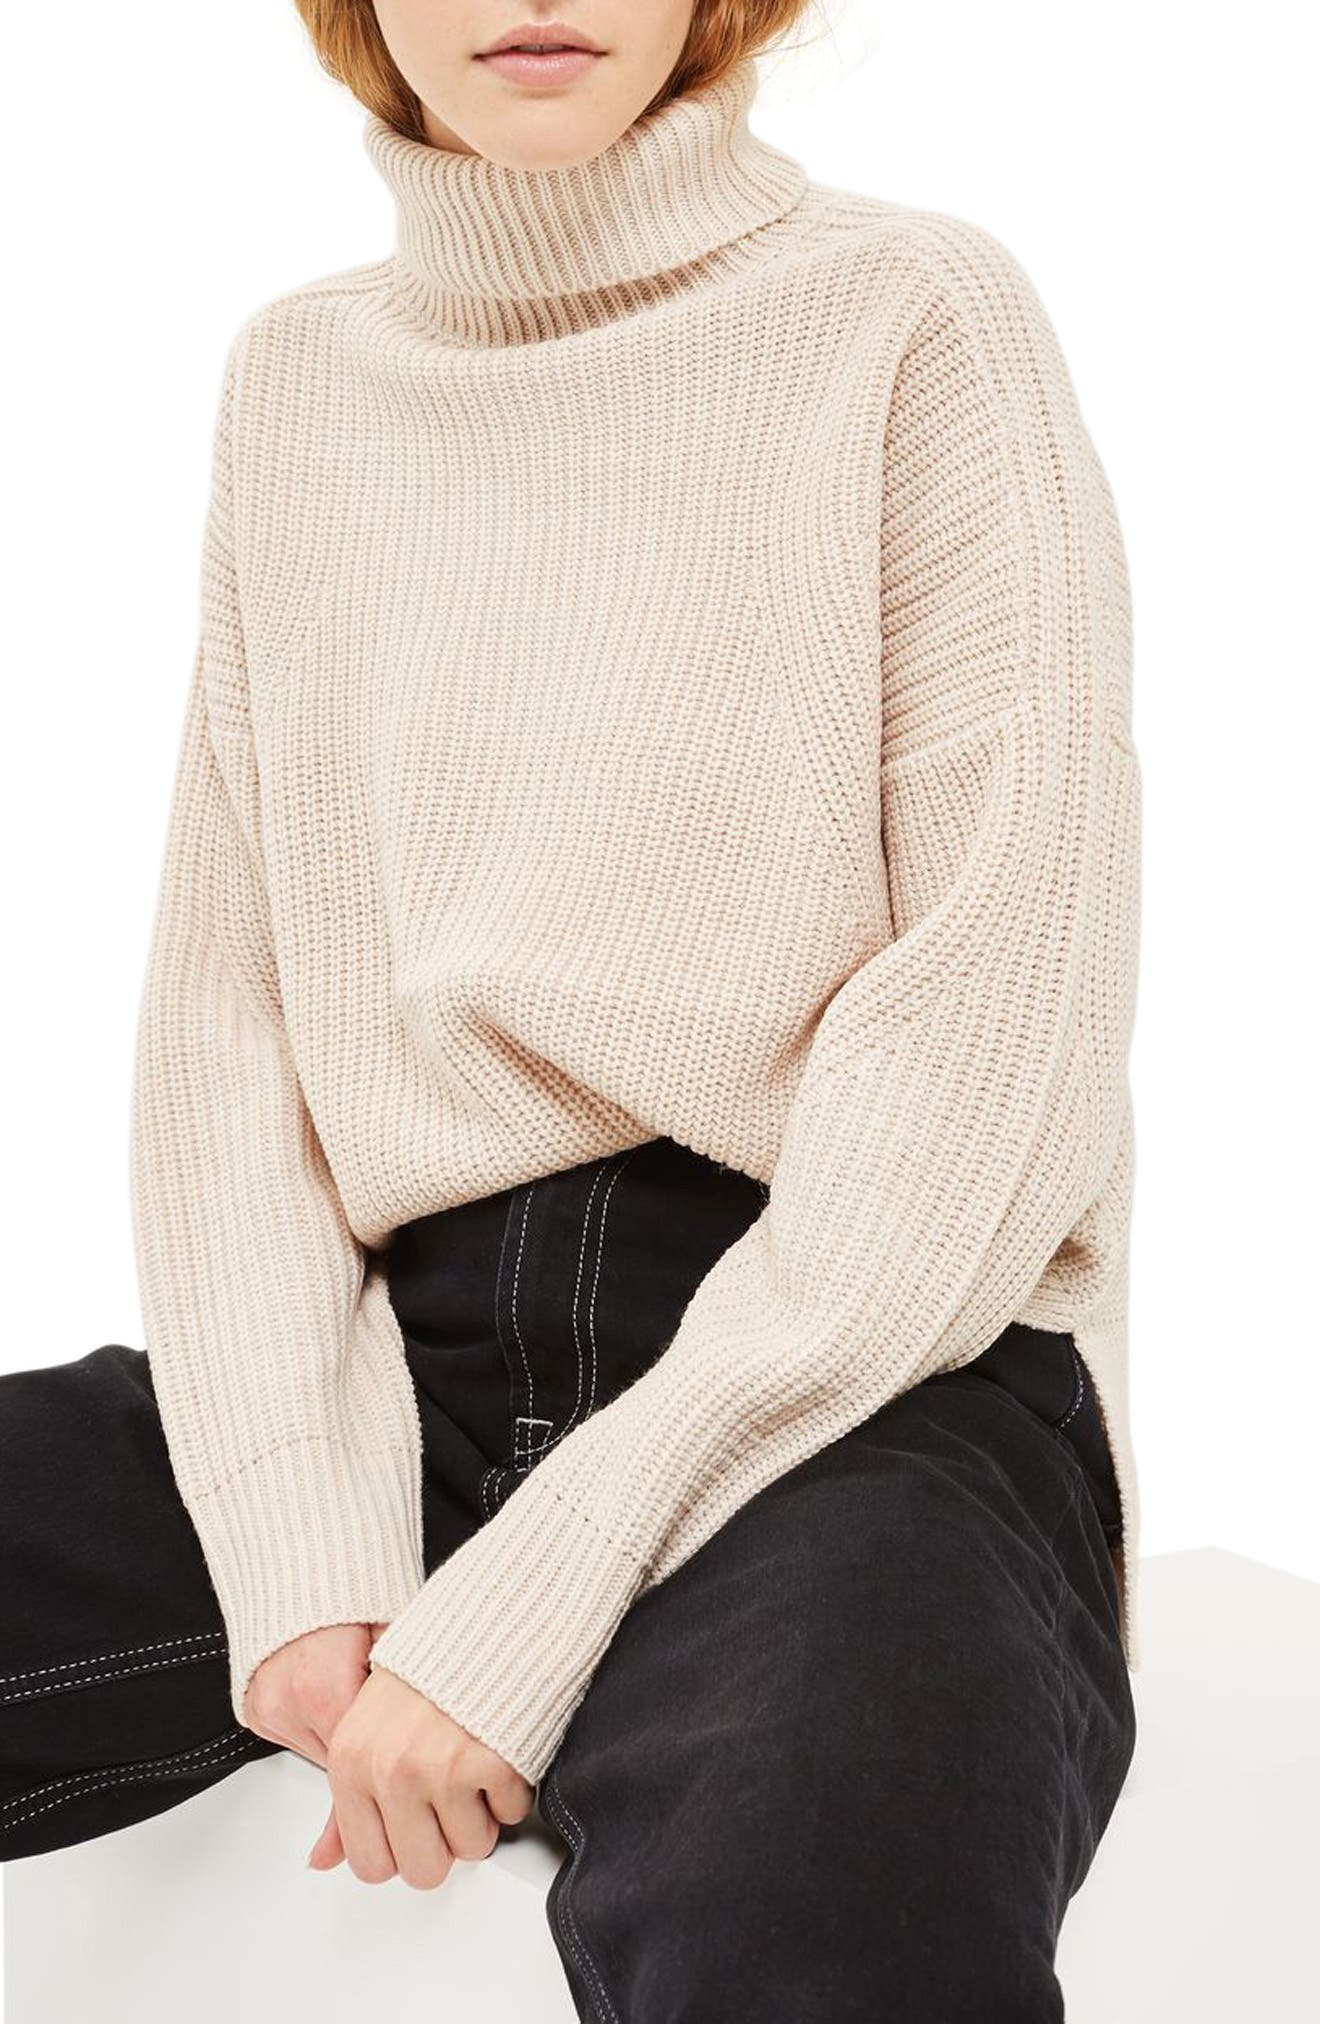 Topshop Boxy Ribbed Roll Neck Sweater